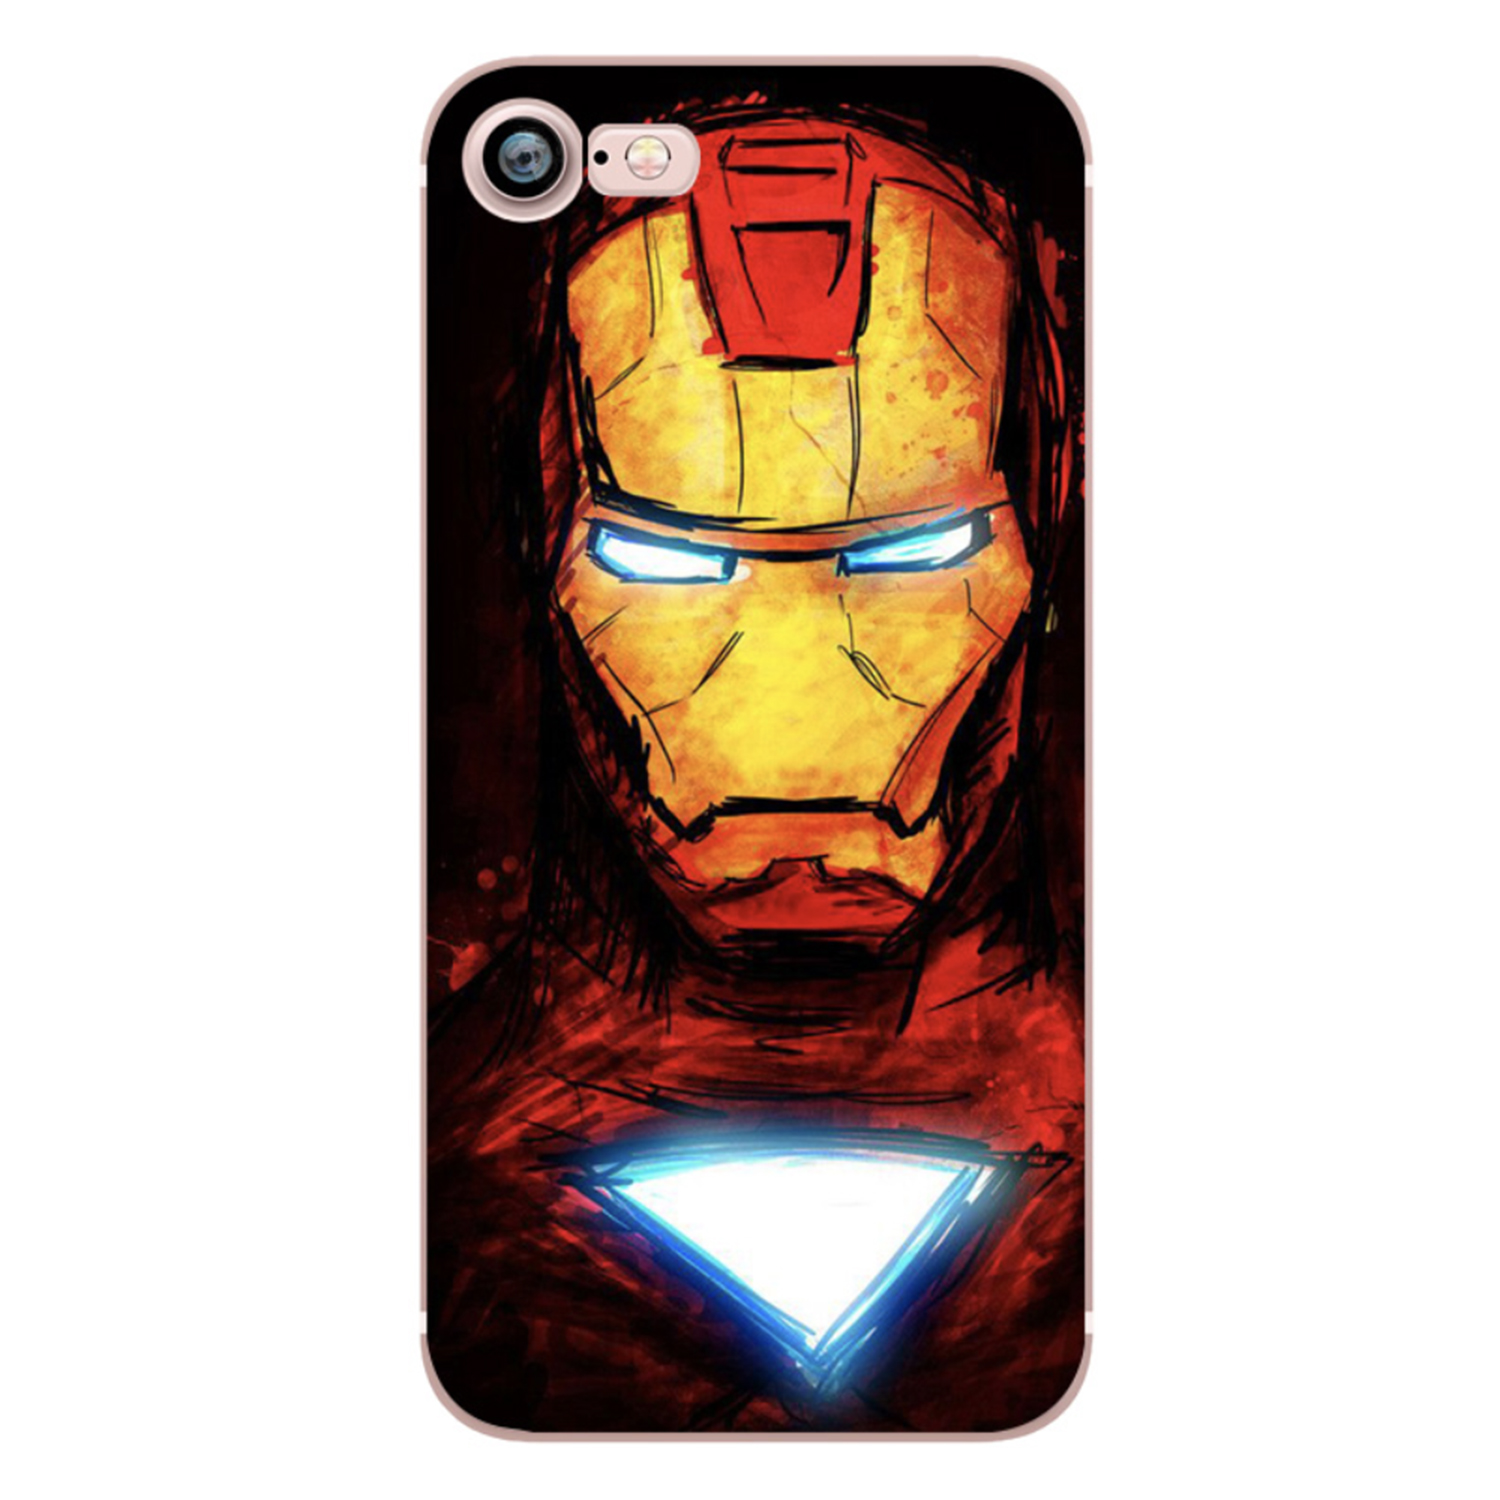 Kritzel Superheroes Collection für iPhone 7 - SHC - #25